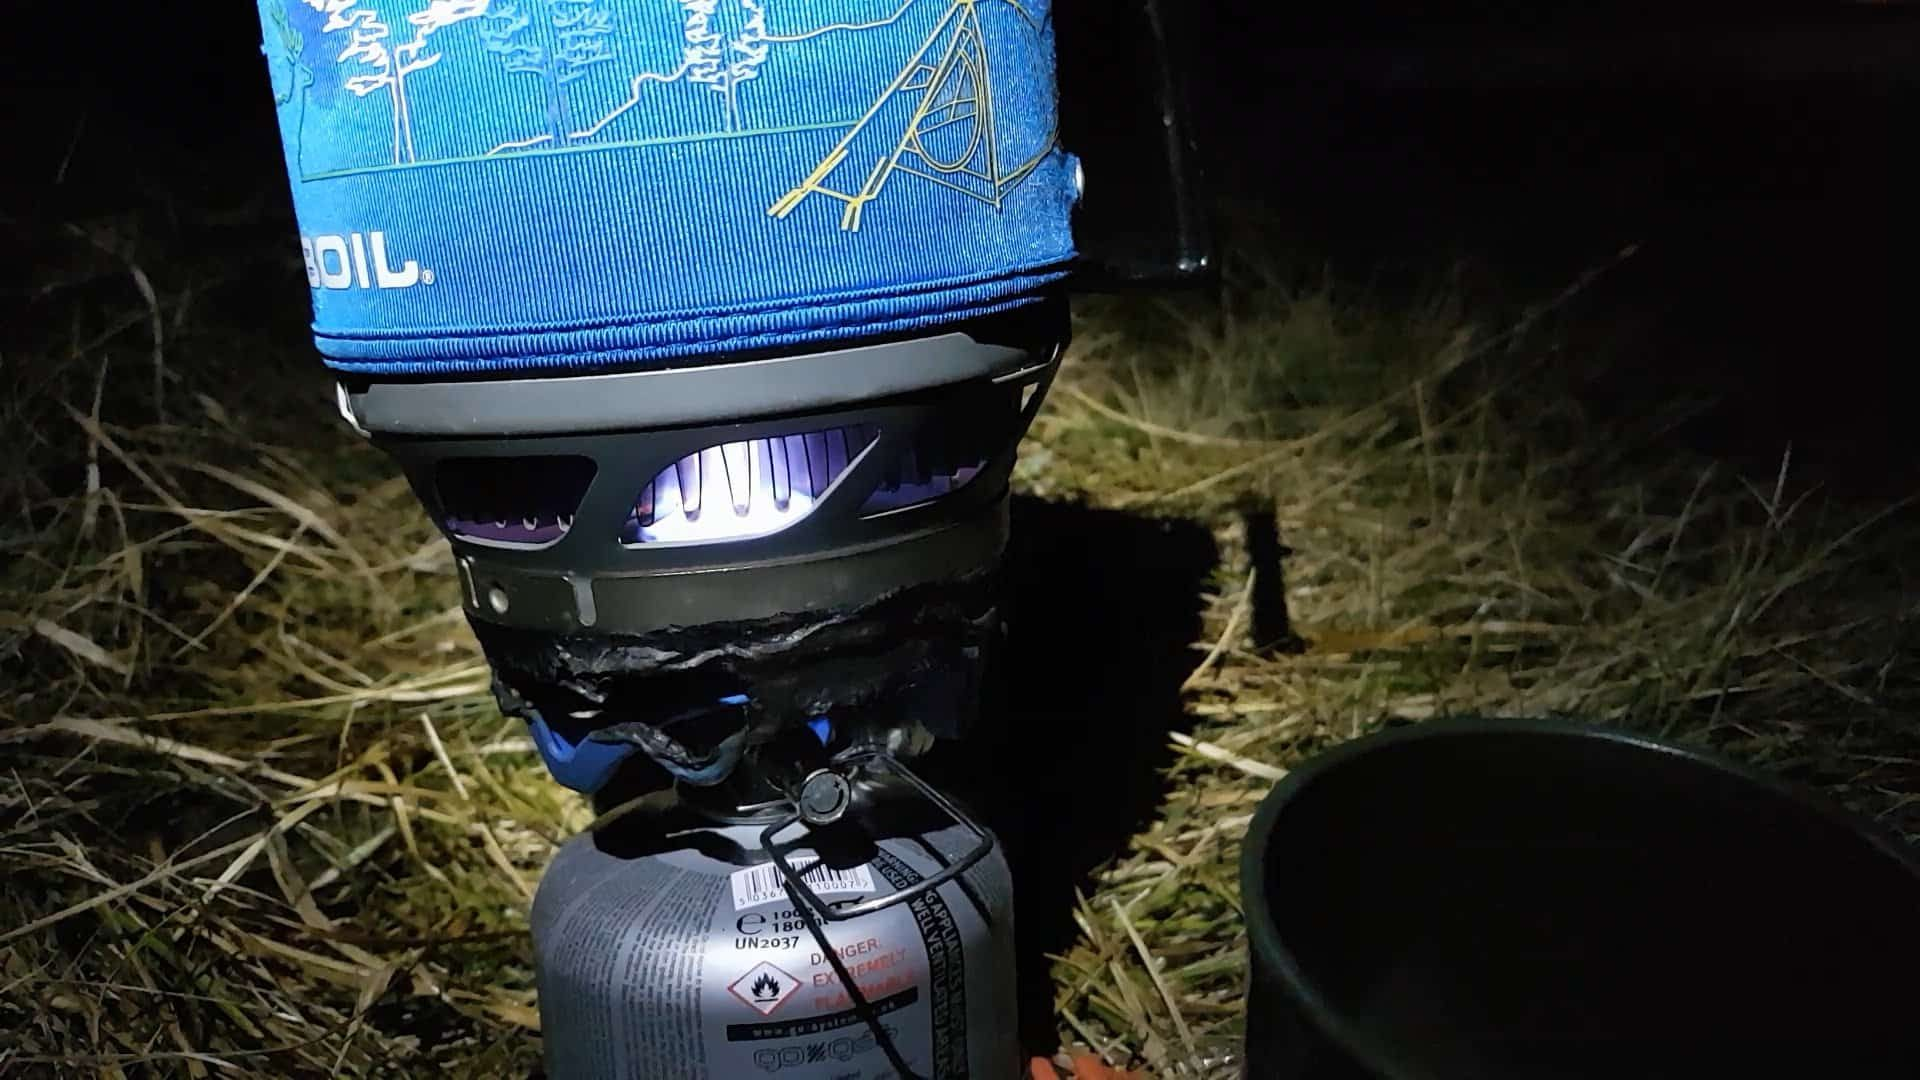 A jetboil keeps it simple - cooking a meal in the November darkness